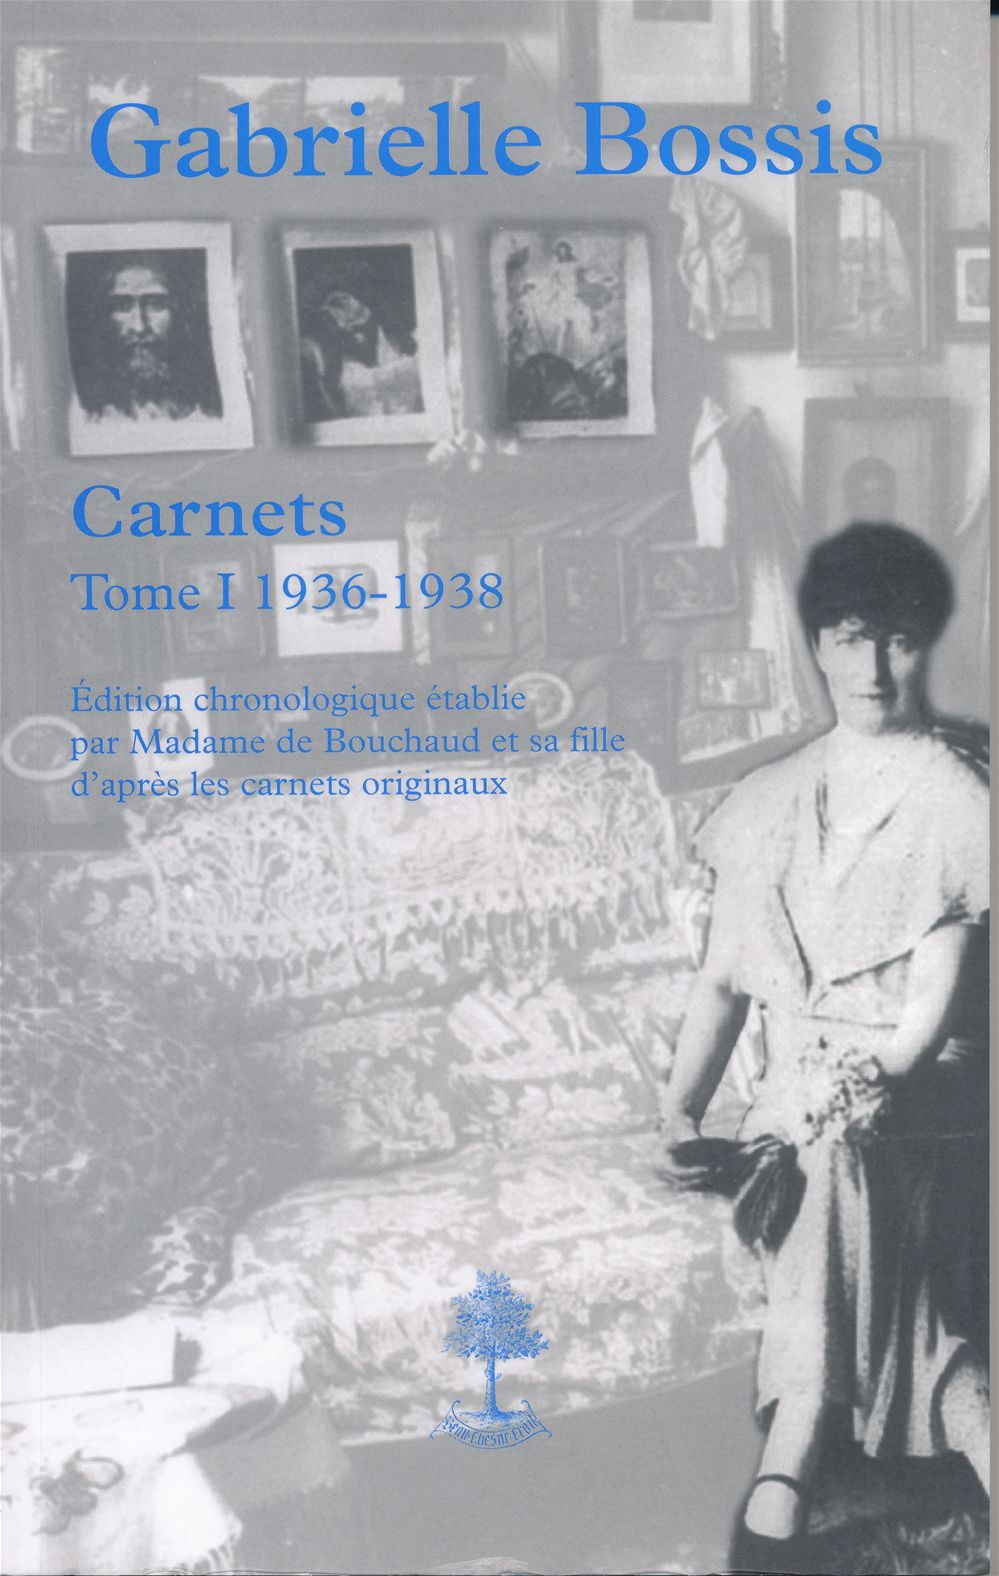 Carnets gabrielle bossis, tome 1 (1936-1938)